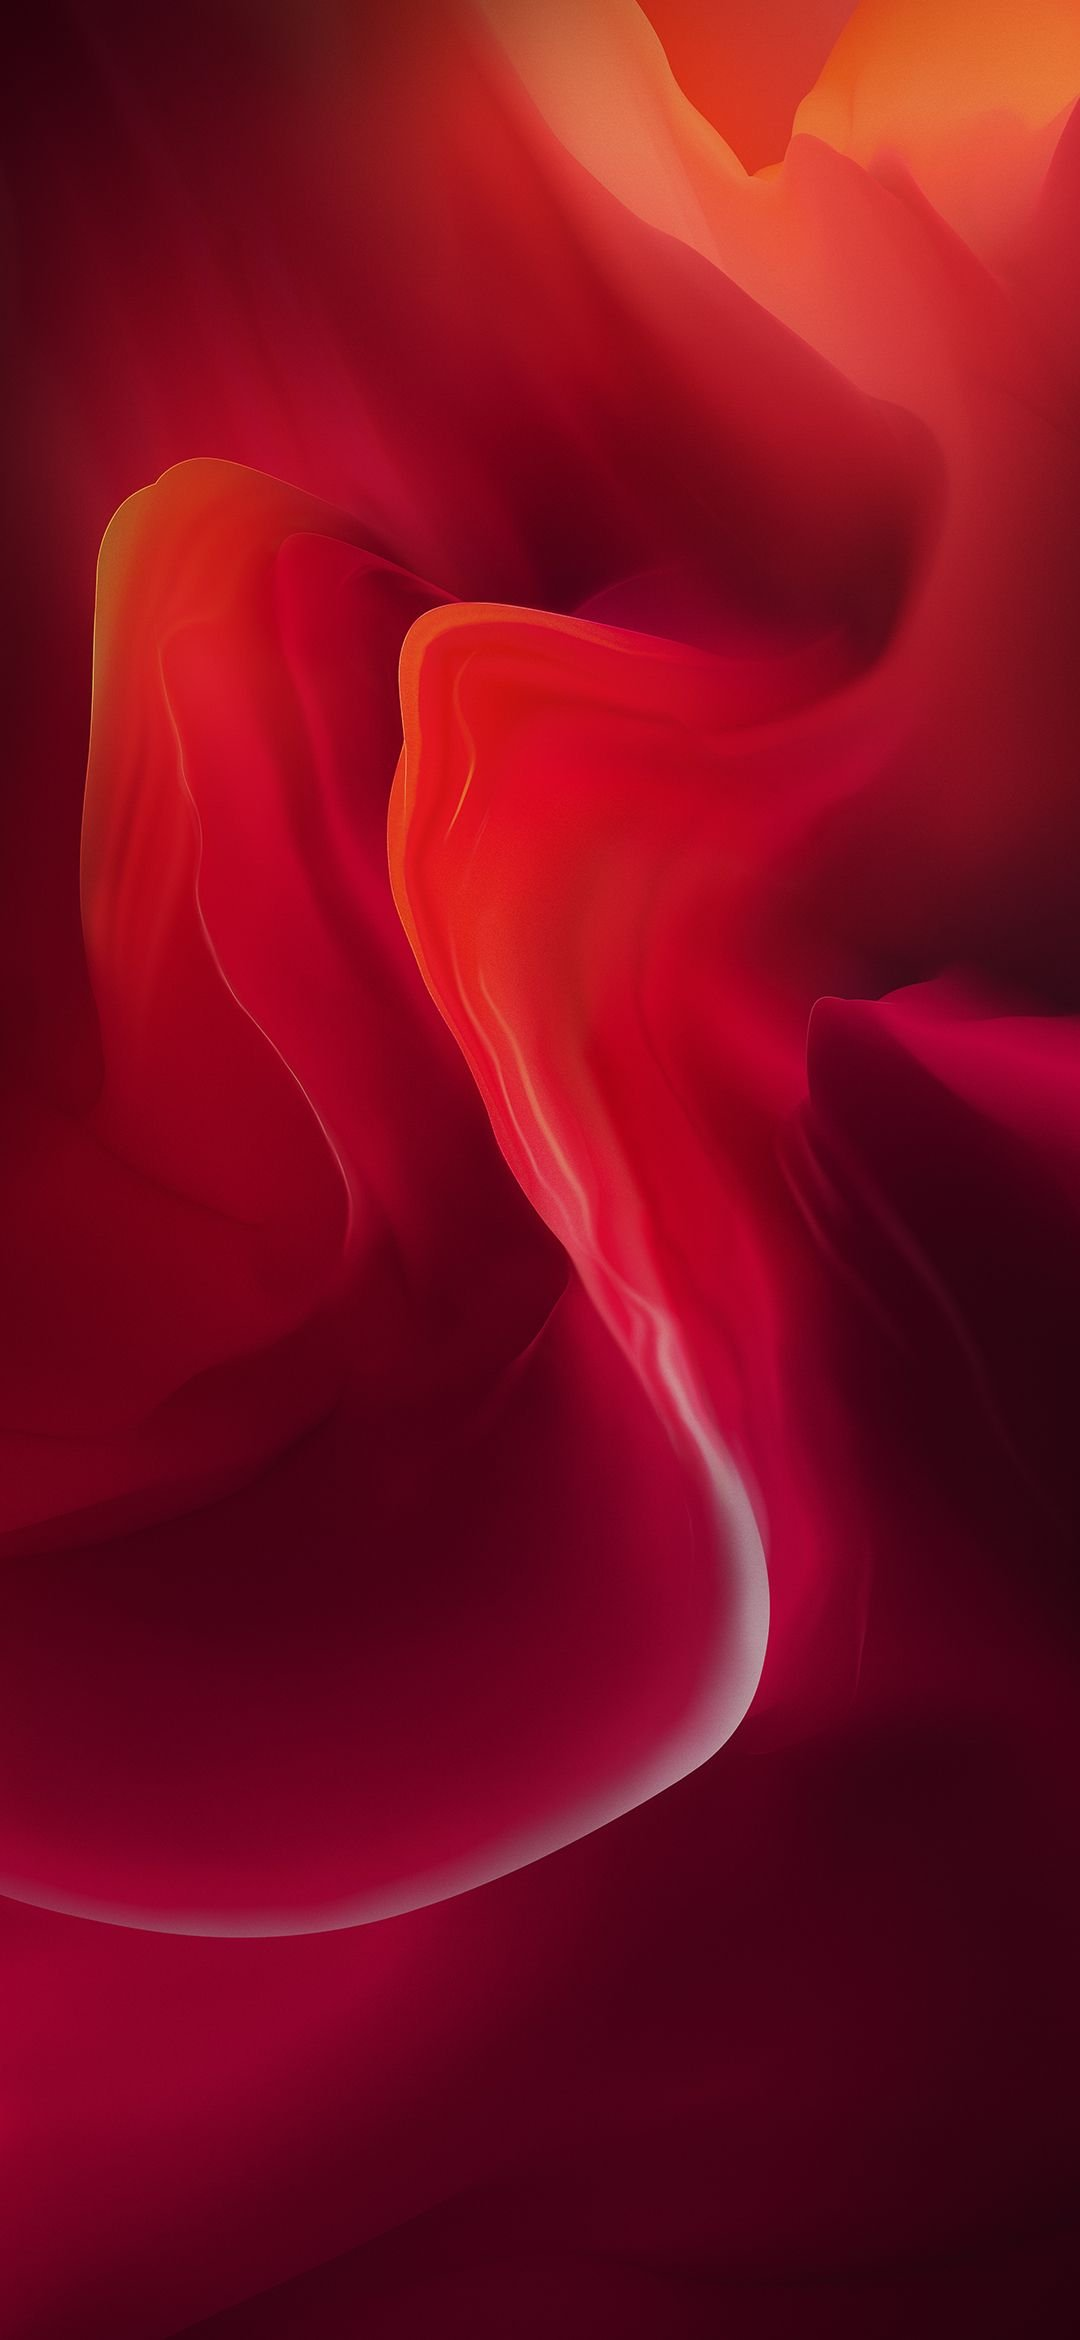 Download OnePlus 6T Wallpapers 9